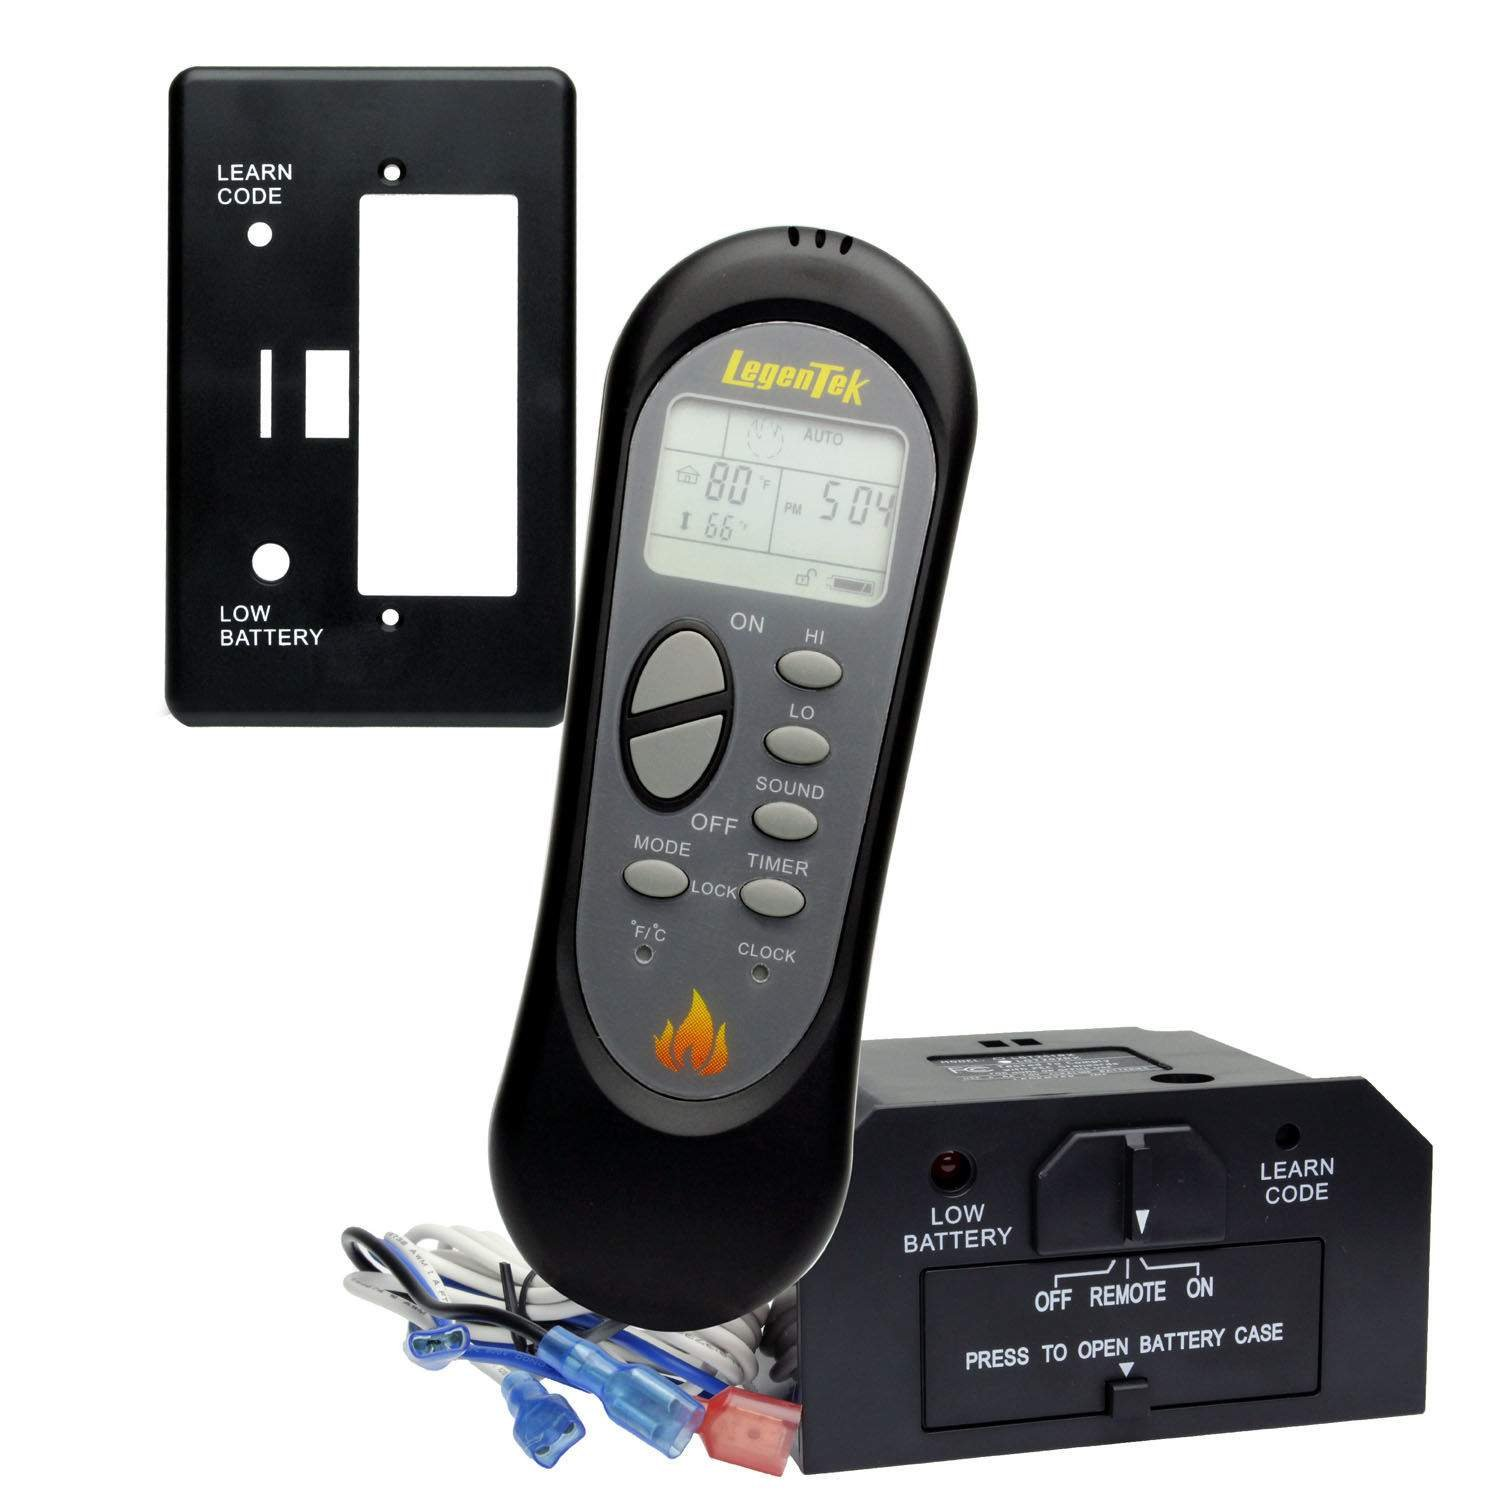 Hearth Products Controls Acumen Ultrasonic Thermostatic Fireplace Remote Control (TRX-25) HPC Indoor